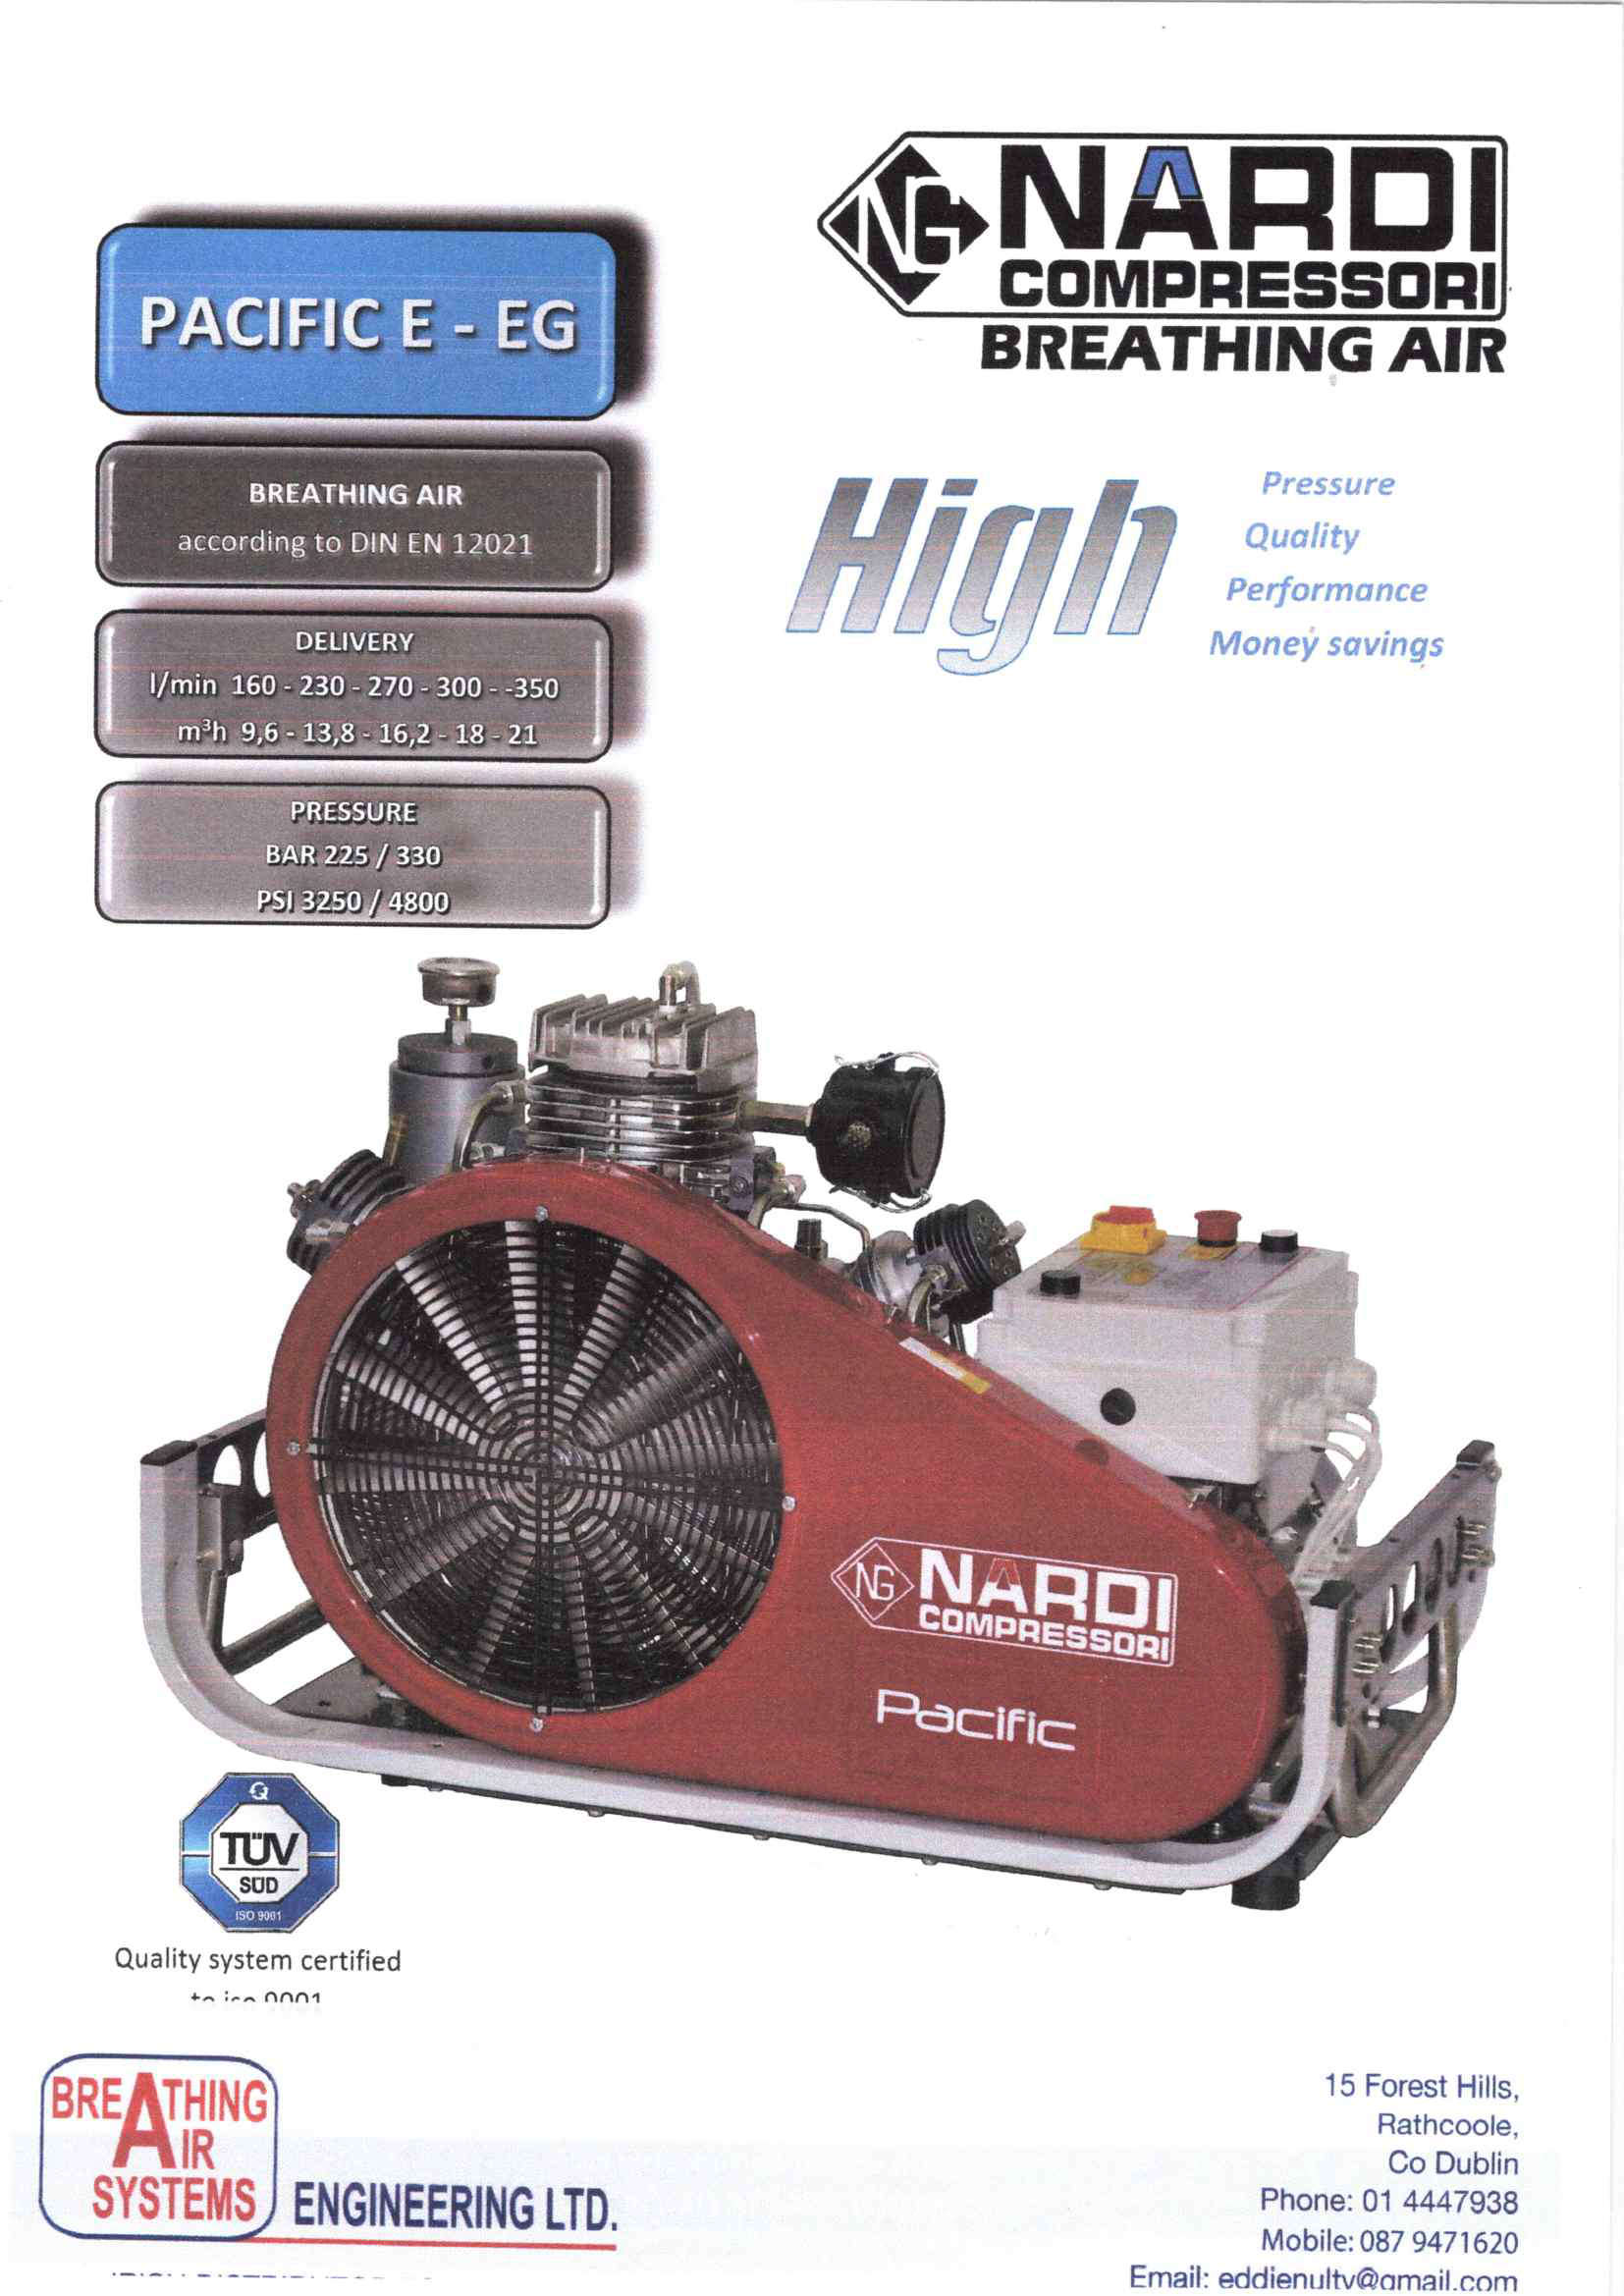 Pacific E-EG Nardi Breathing Air Compressors